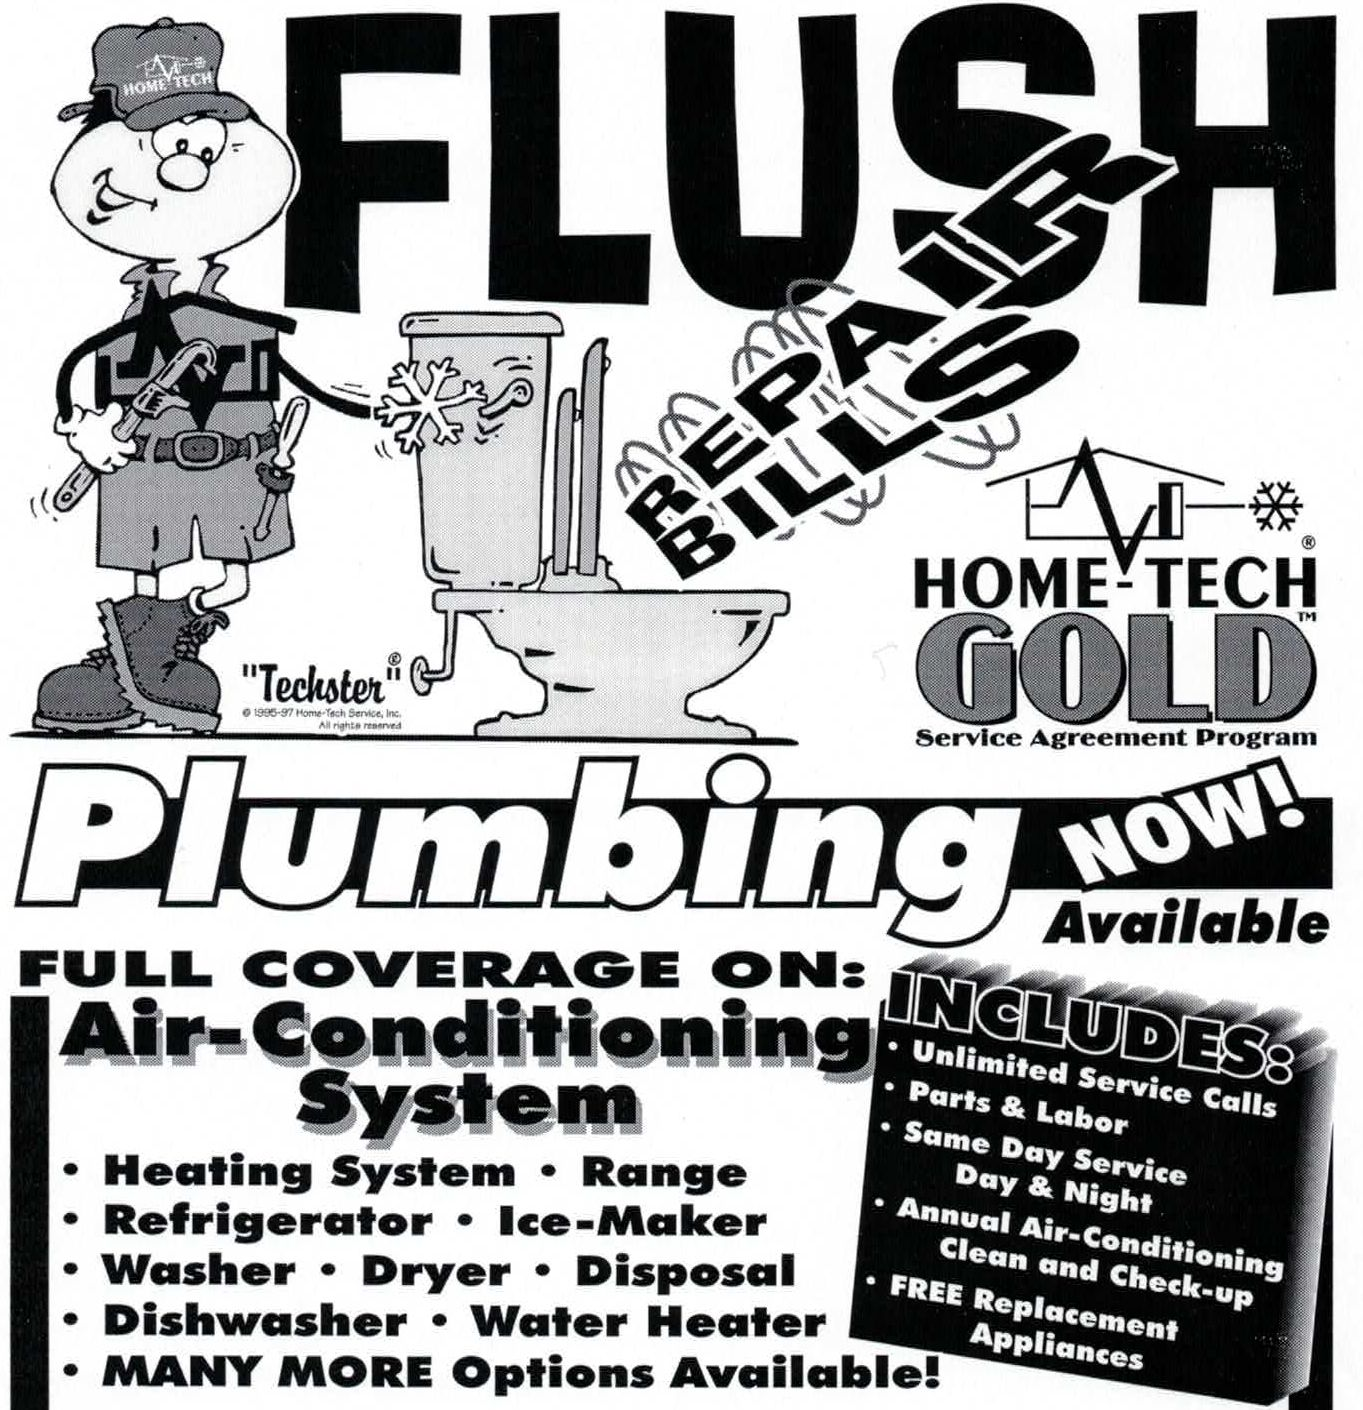 HomeTech plumbers plumber SWFL Home tech, Water